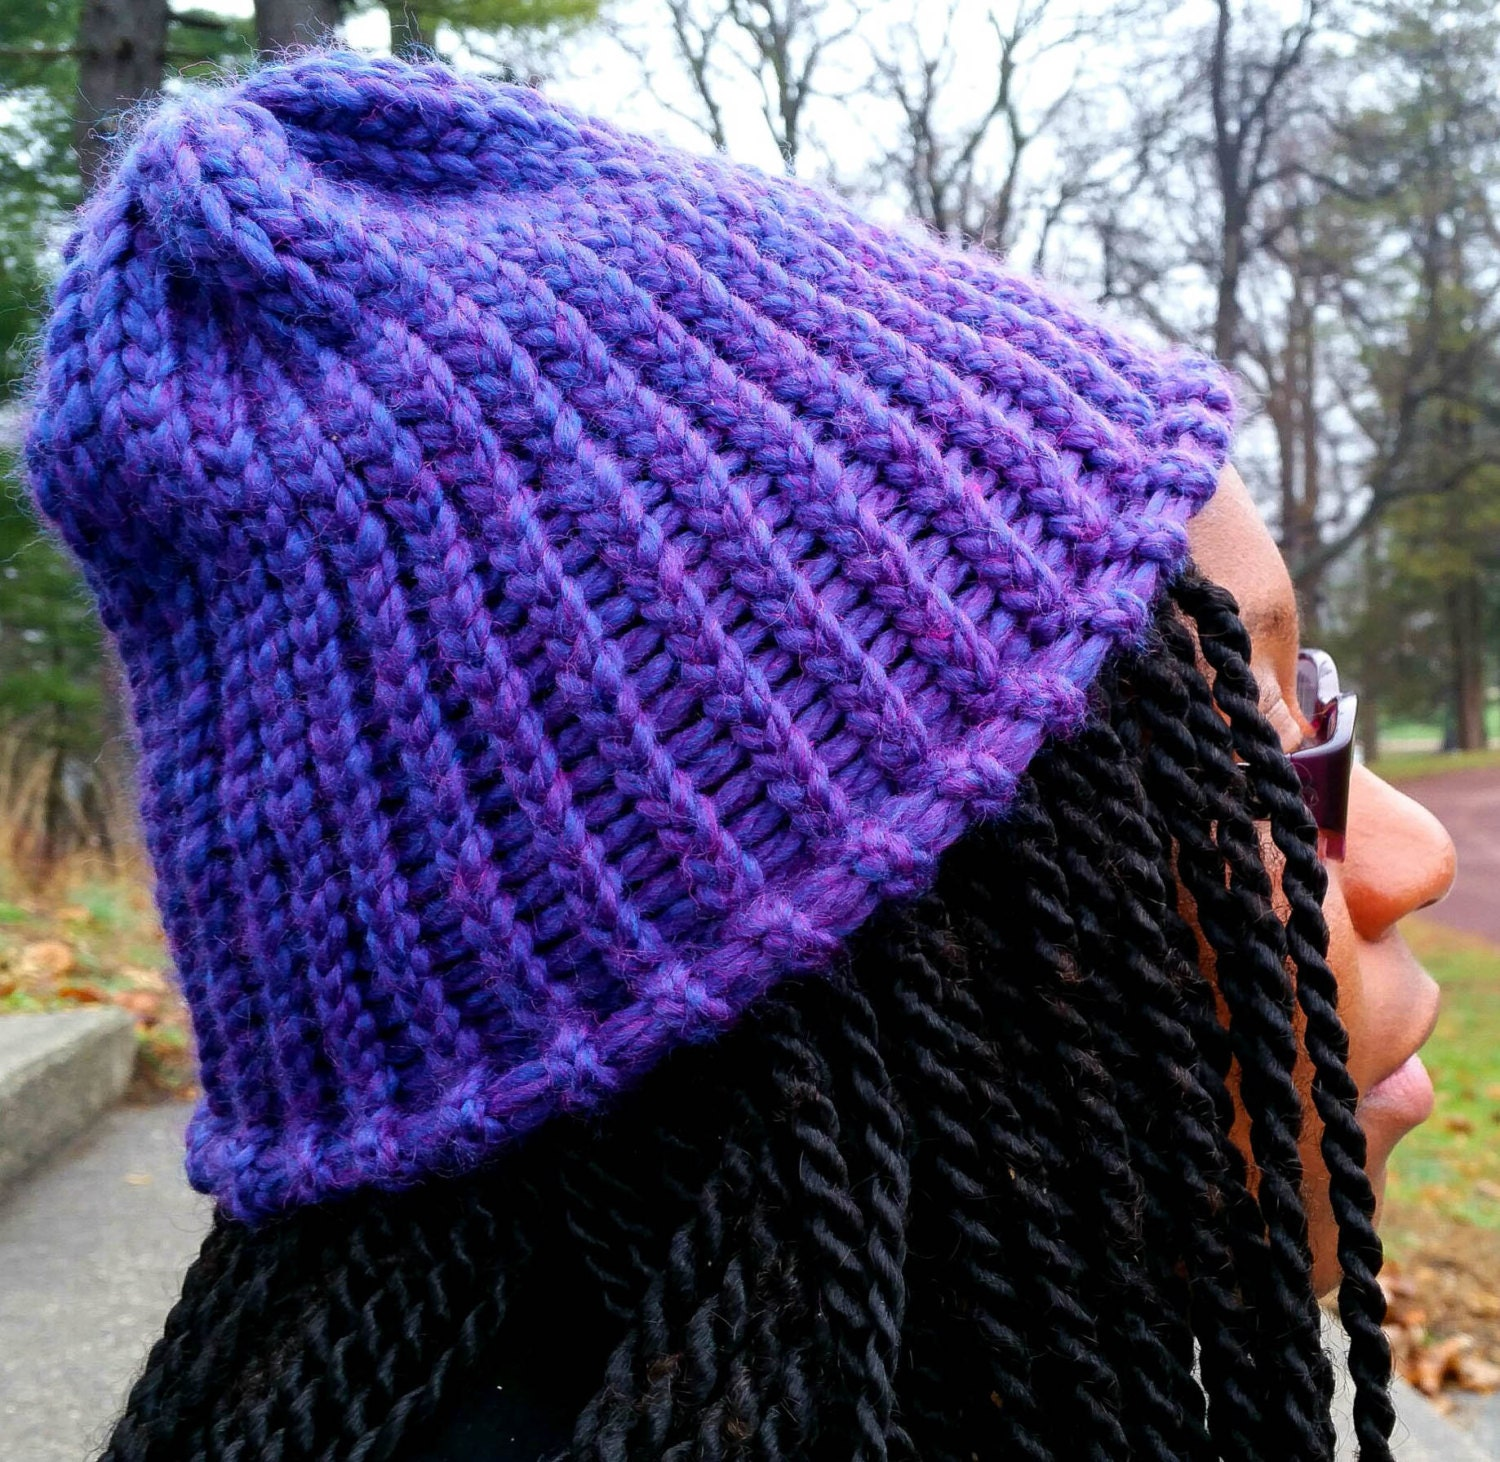 How To Loom Knit Slouchy Beanie Basketweave : Knitted purple slouch beanie loom knit